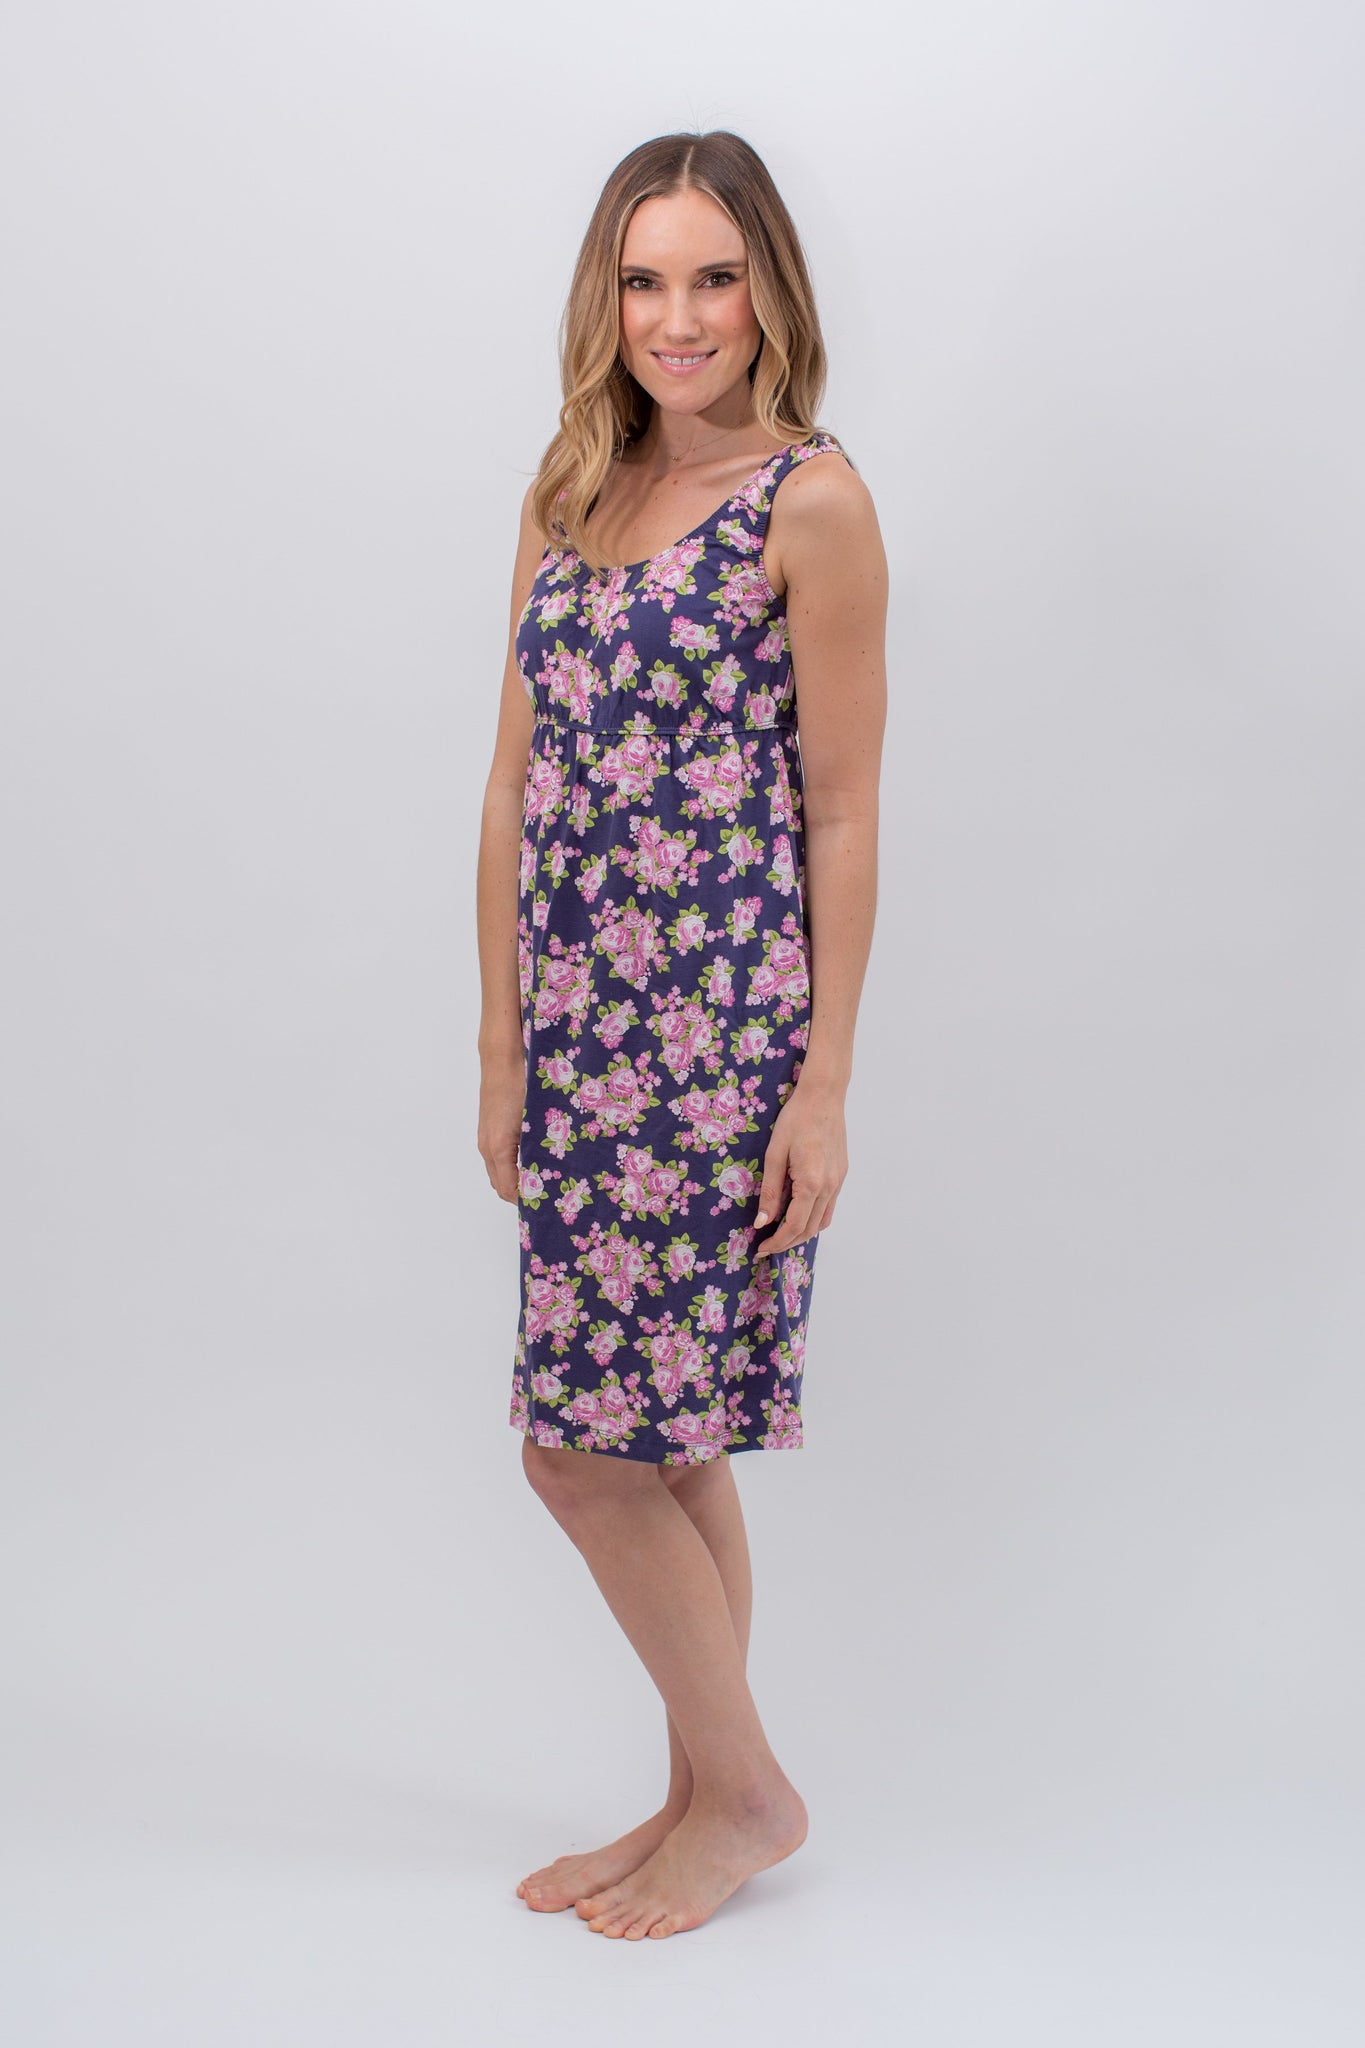 Eve Floral 2 in 1 Maternity/Nursing Sleeveless Nightgown – Gownies